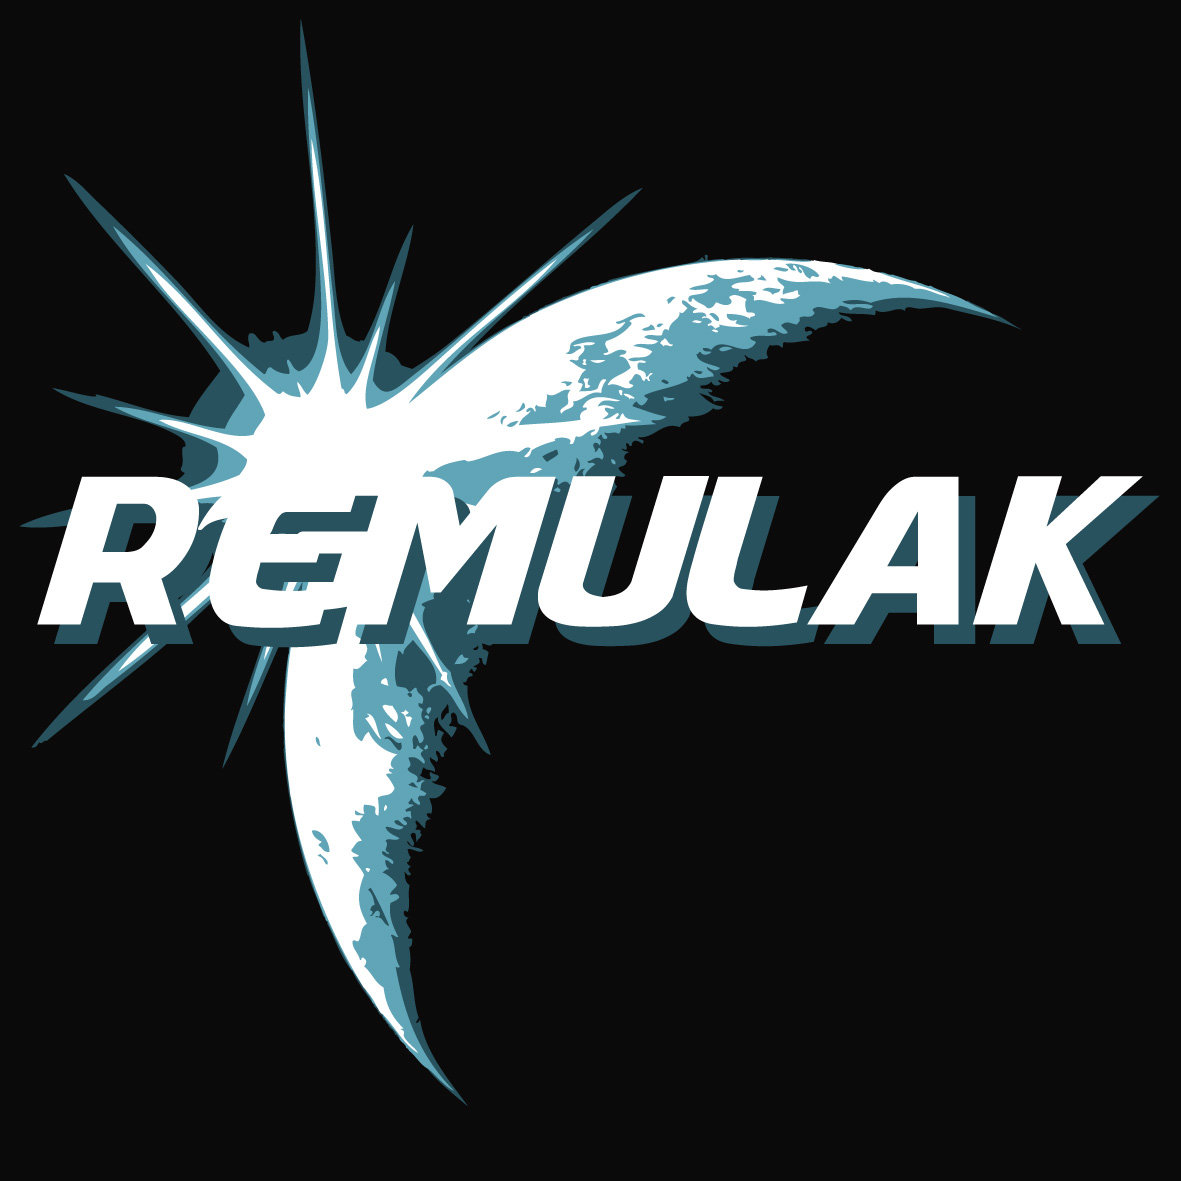 Remulak - NIGHT SESSIONS (2015)